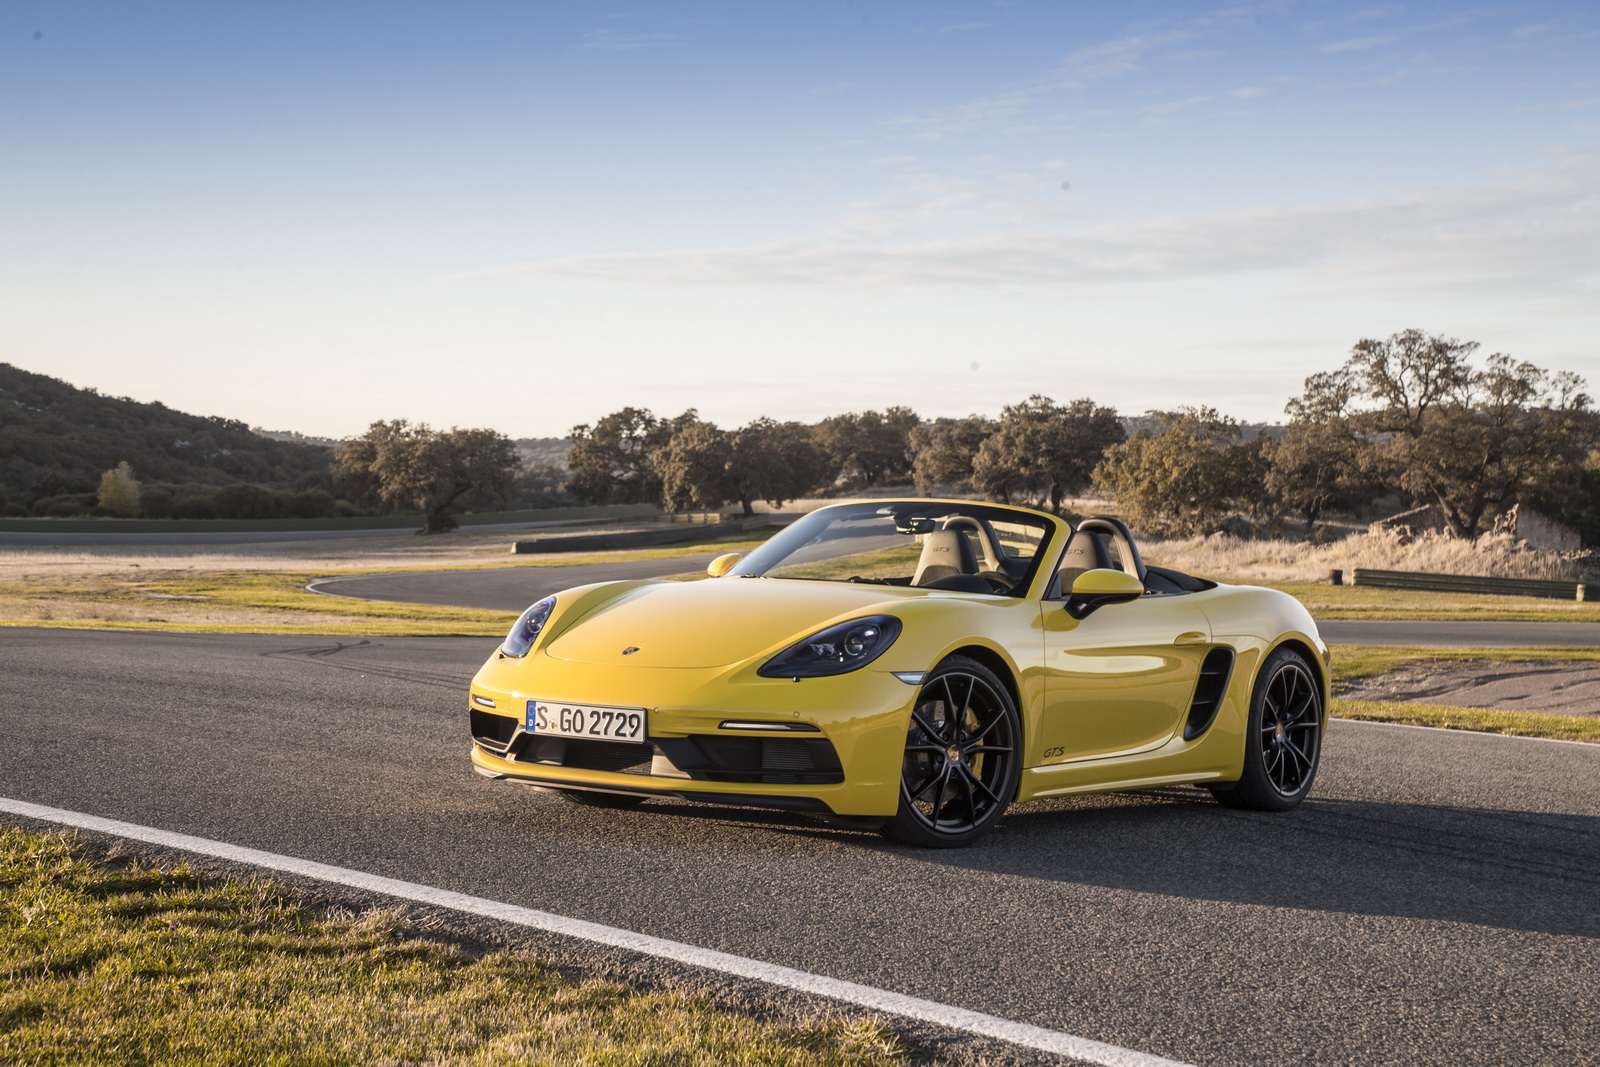 New Porsche 718 Cayman and Boxster GTS Detailed In 85 Pics ...